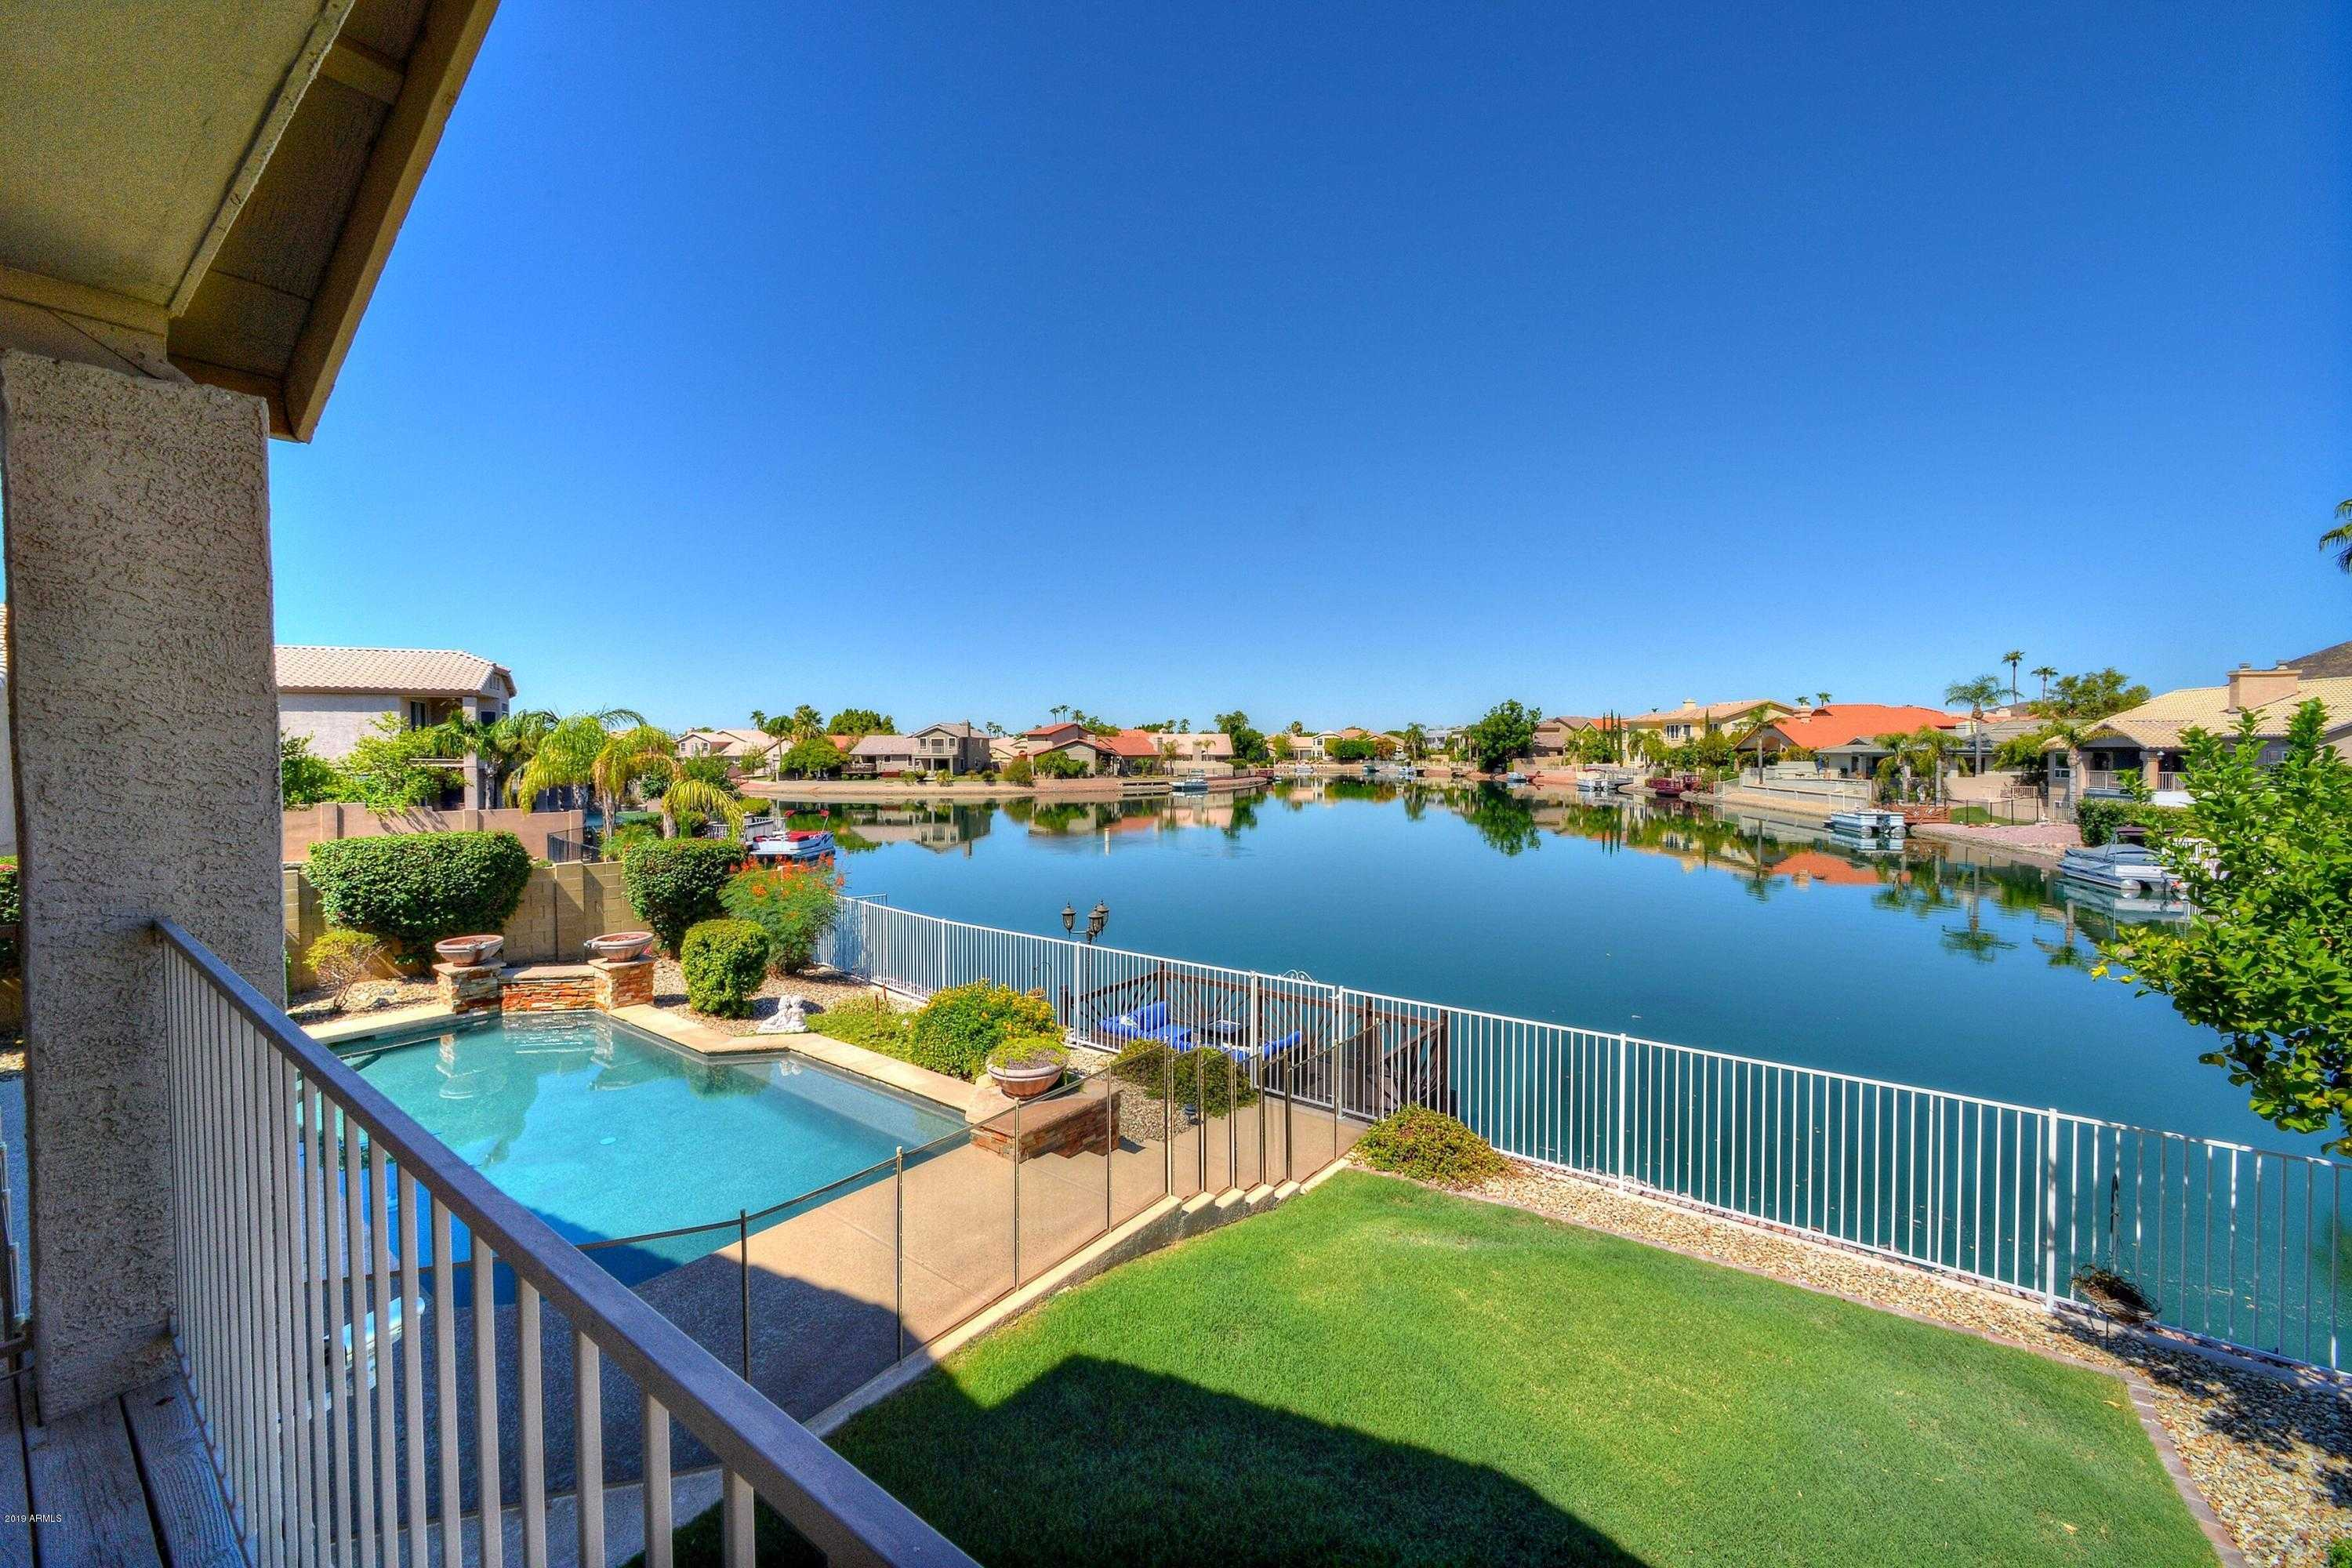 $585,000 - 5Br/4Ba - Home for Sale in Arrowhead Lakes Unit 4 Lot 1-59 Tr A, Glendale